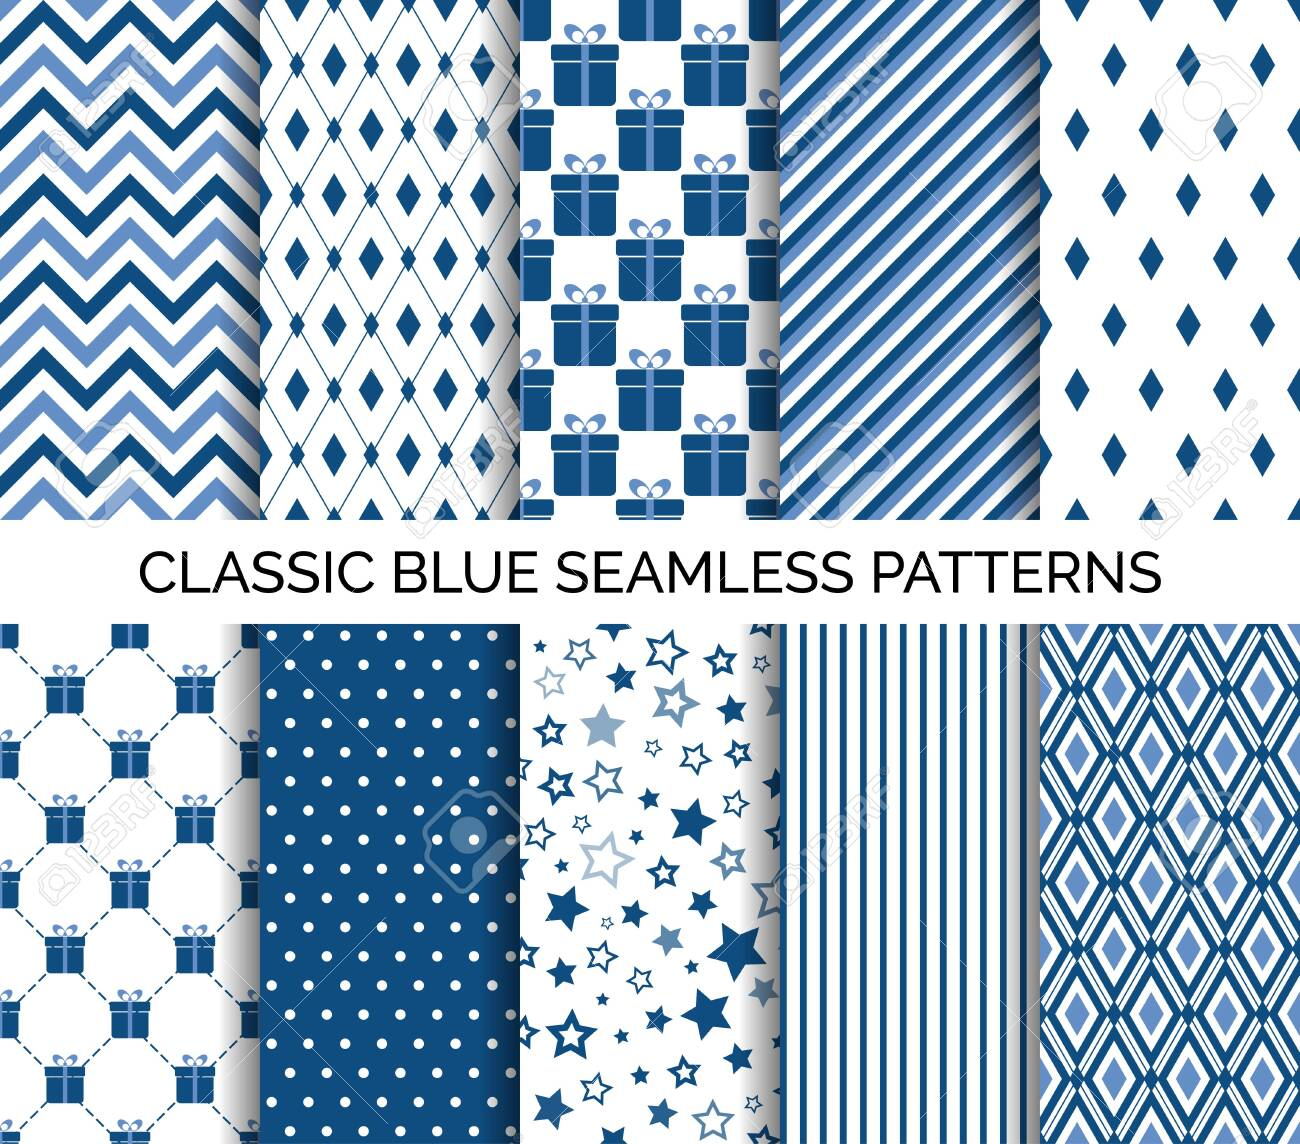 Set of classic blue seamless pattern. Vector abstract backgrounds. Chevron, polka dots, striped. For wallpaper design, wrapping paper, fabric print - 135447339